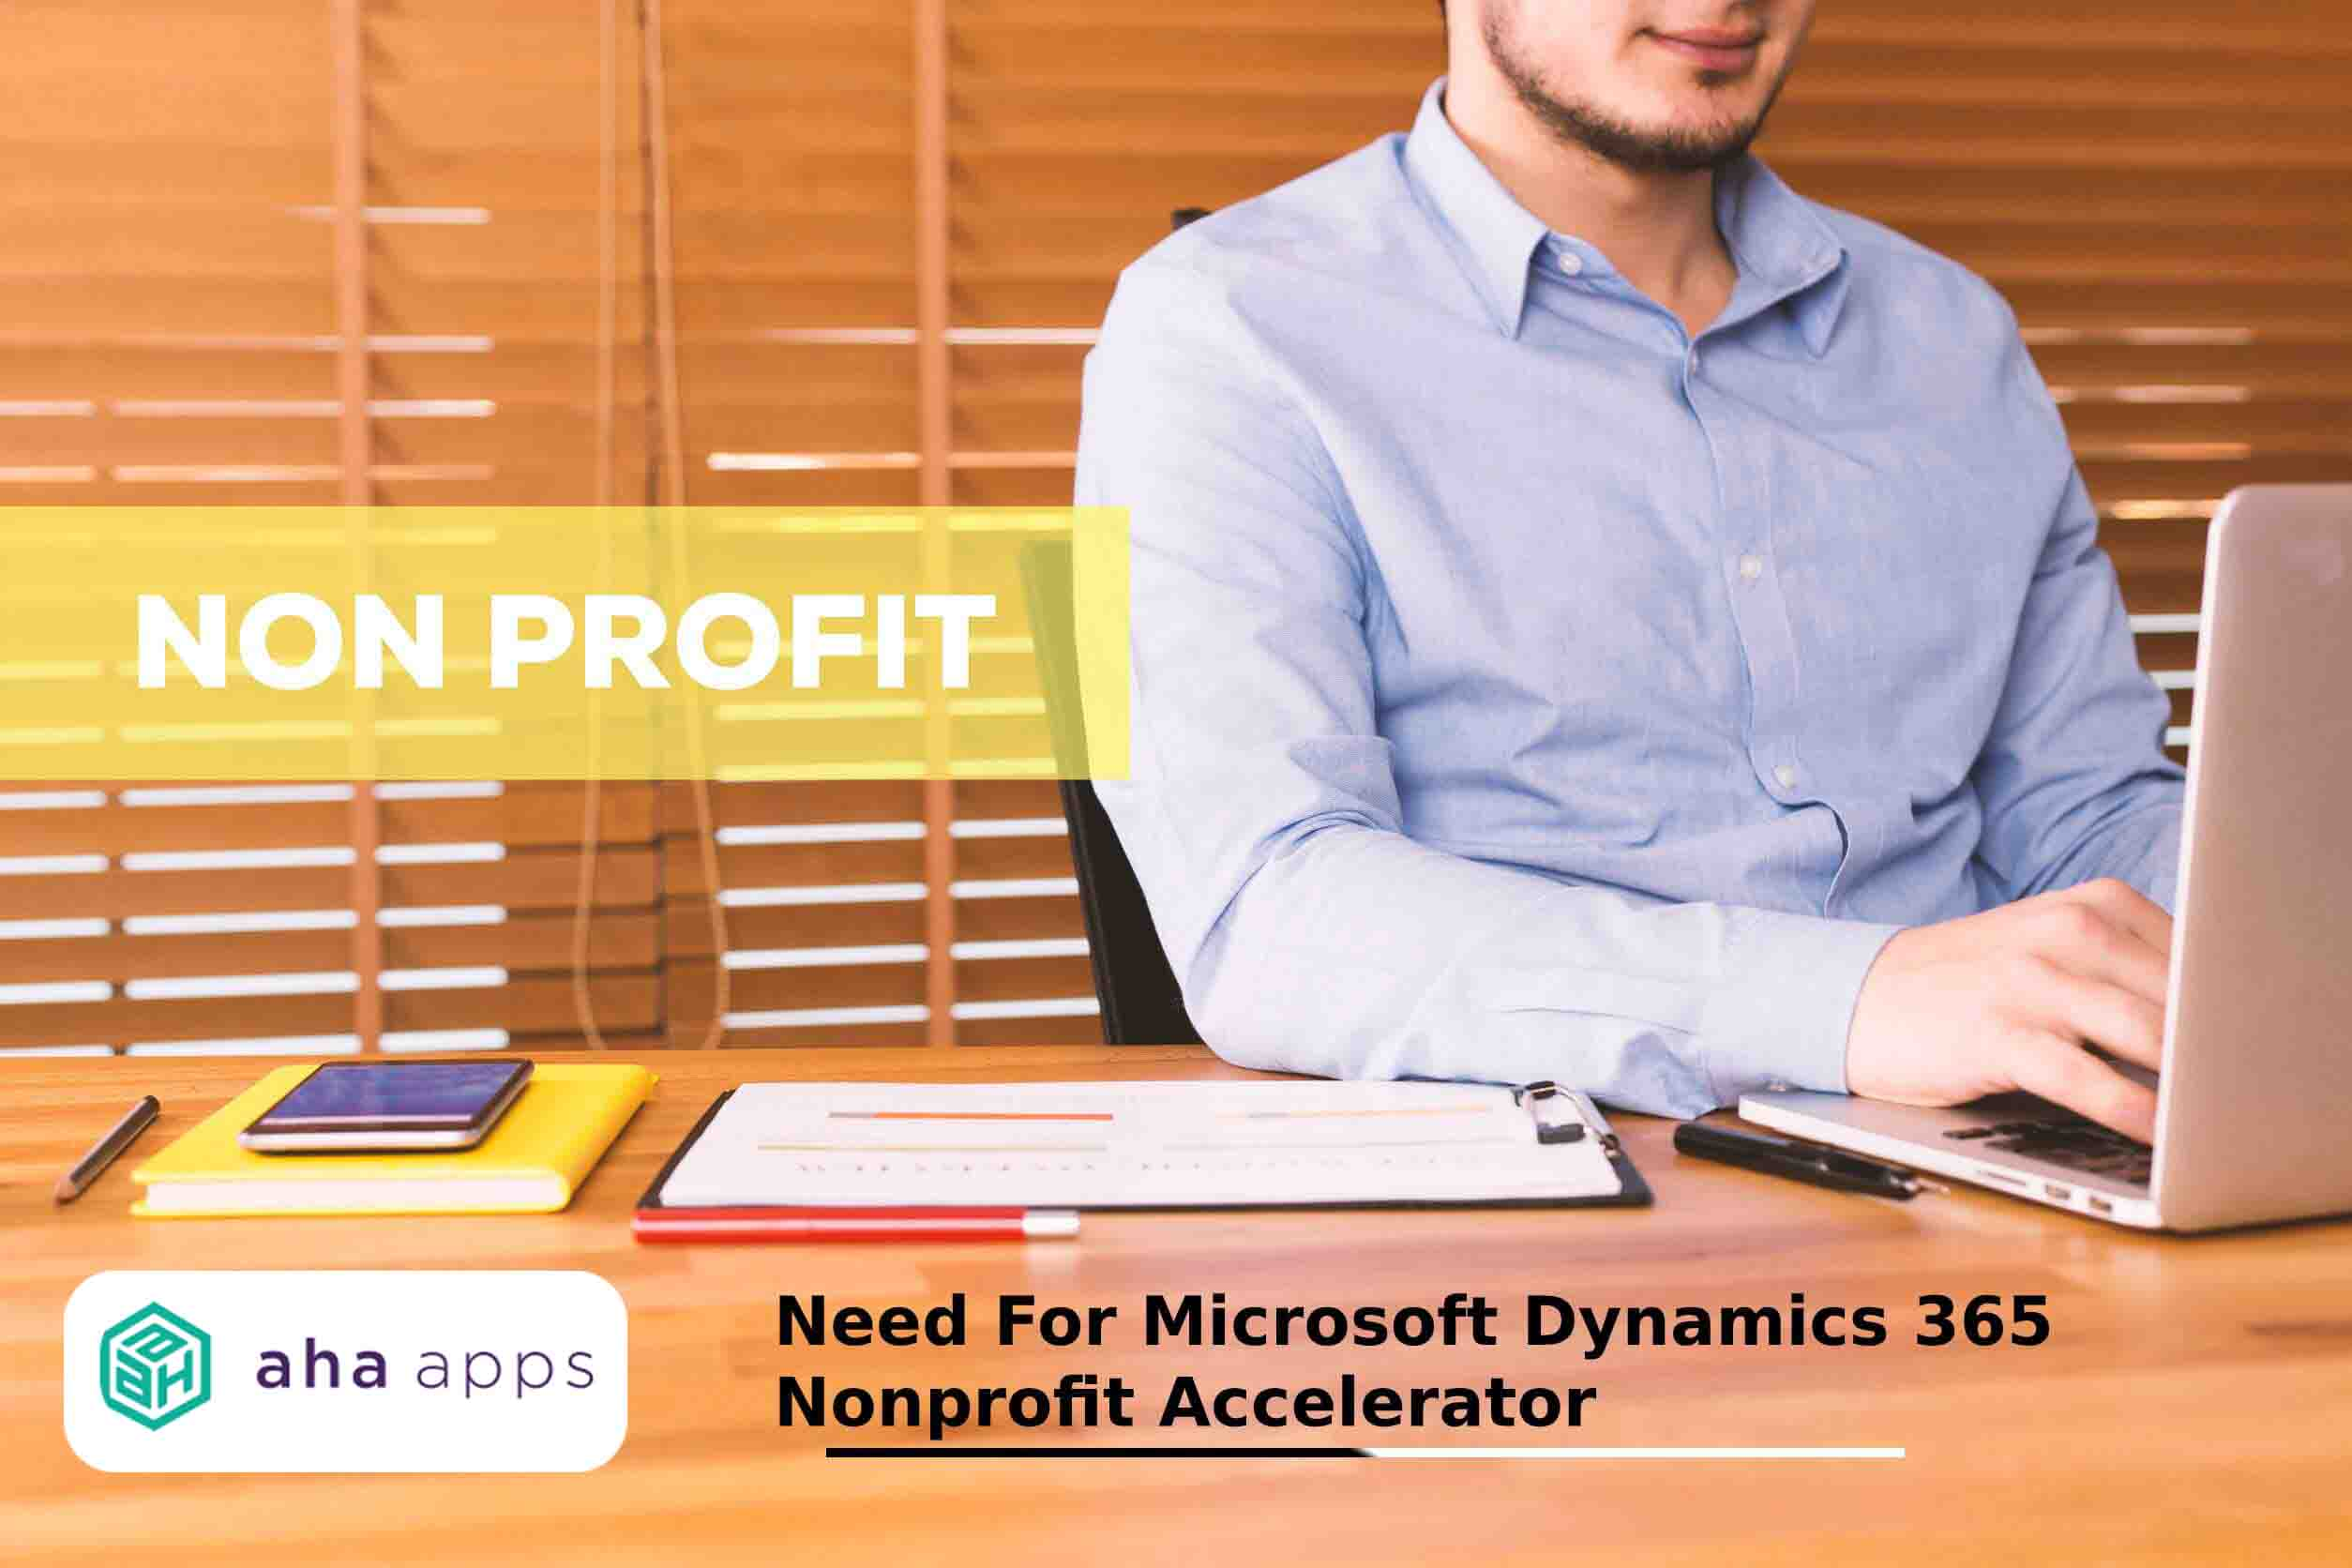 need for Microsoft Dynamics 365 Nonprofit Accelerator - AhaApps